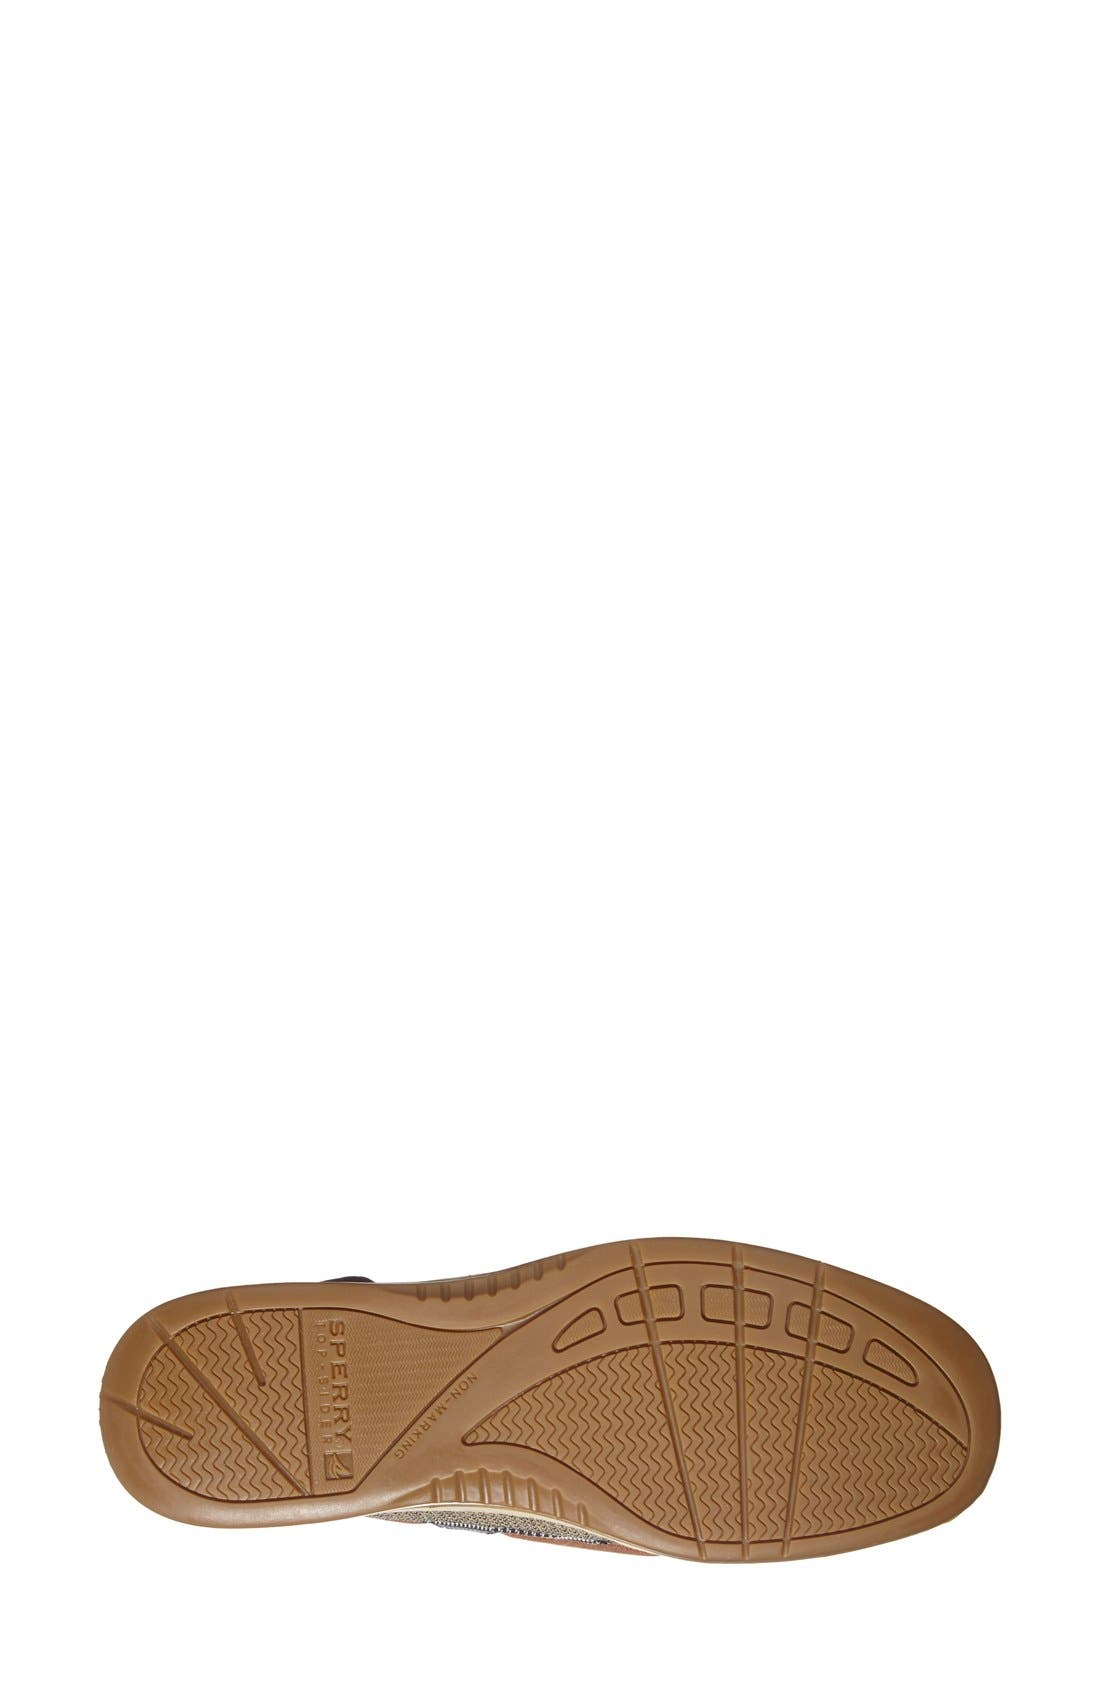 Top-Sider<sup>®</sup> 'Angelfish' Boat Shoe,                             Alternate thumbnail 3, color,                             001